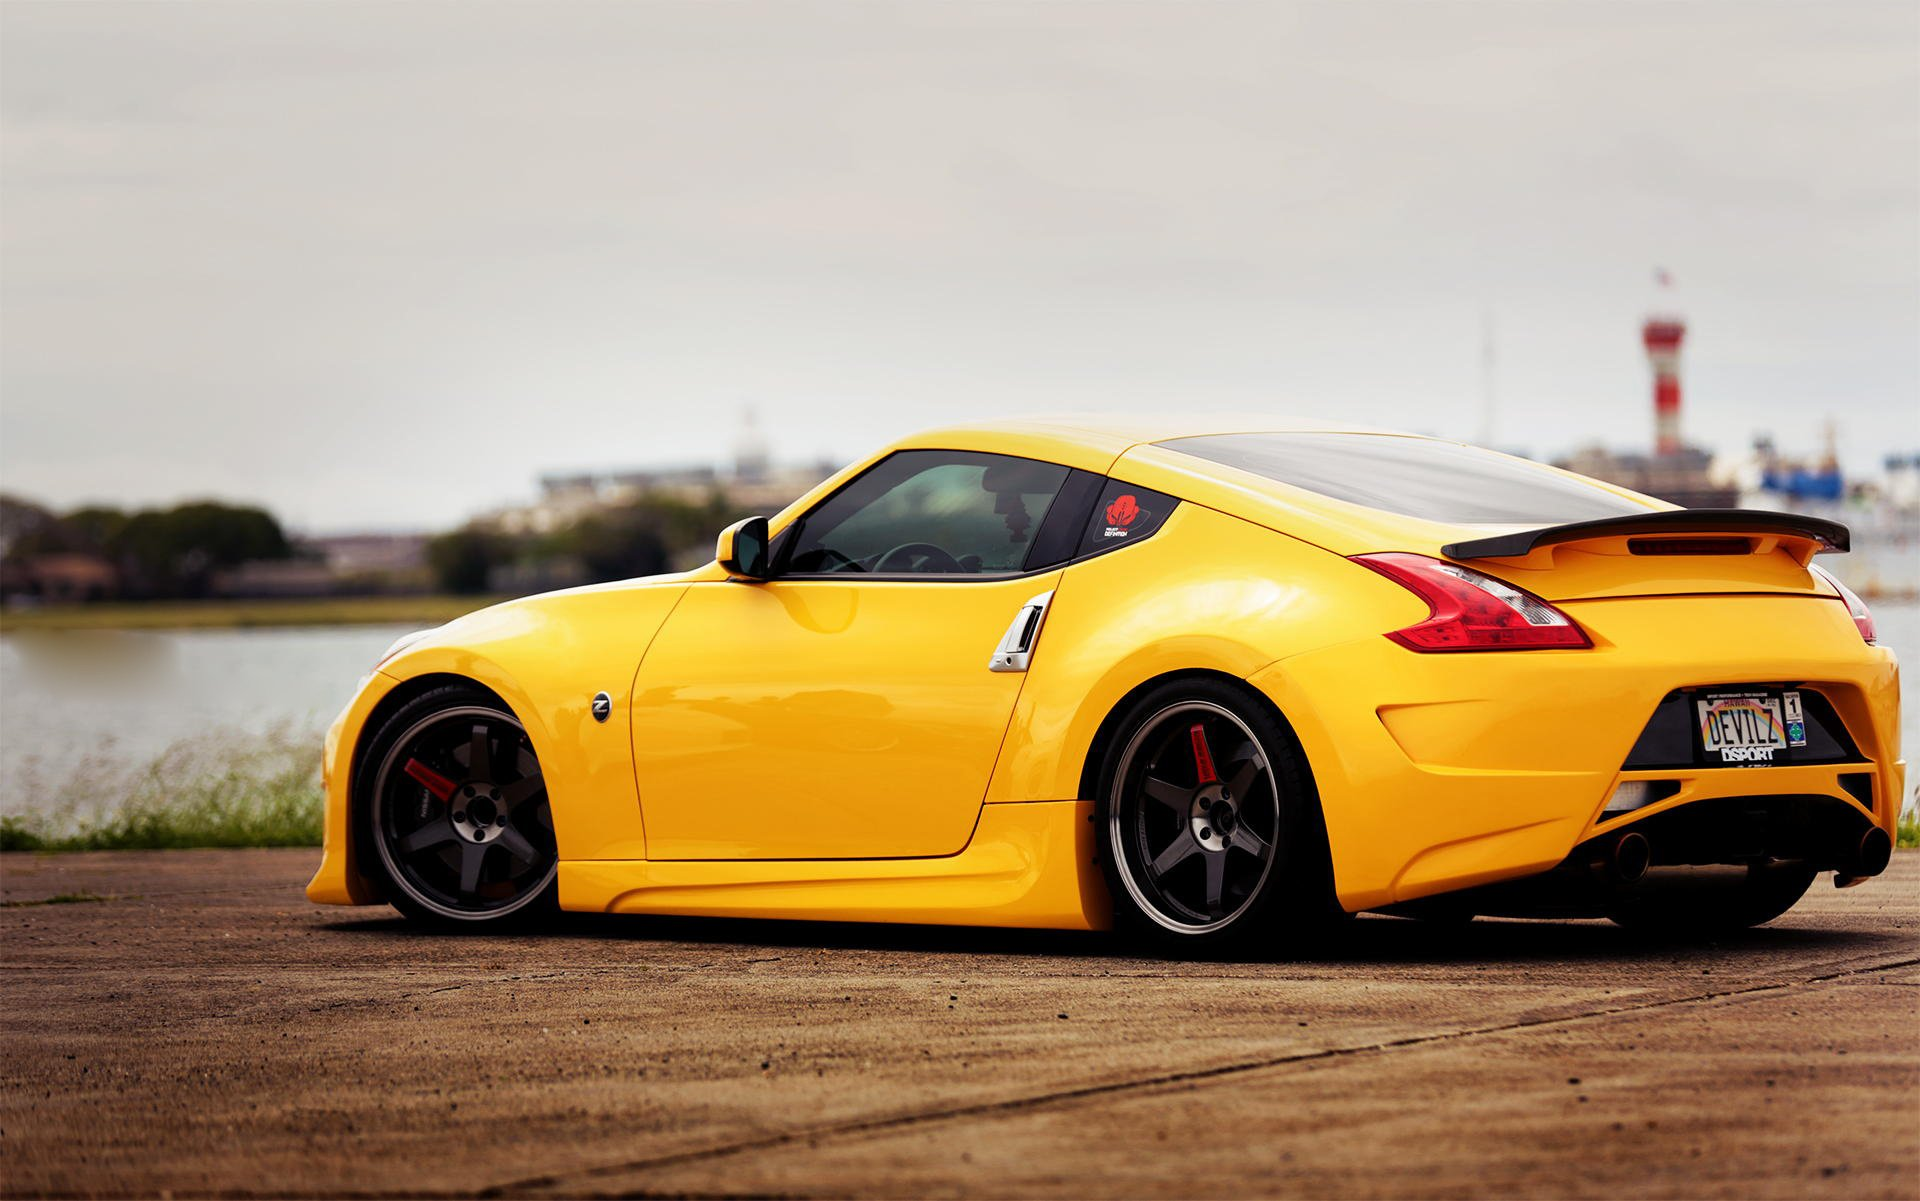 Download Wallpapers Cars Hd Tuning Stance 370z Nissan Wallpaper 1920x1201 336172